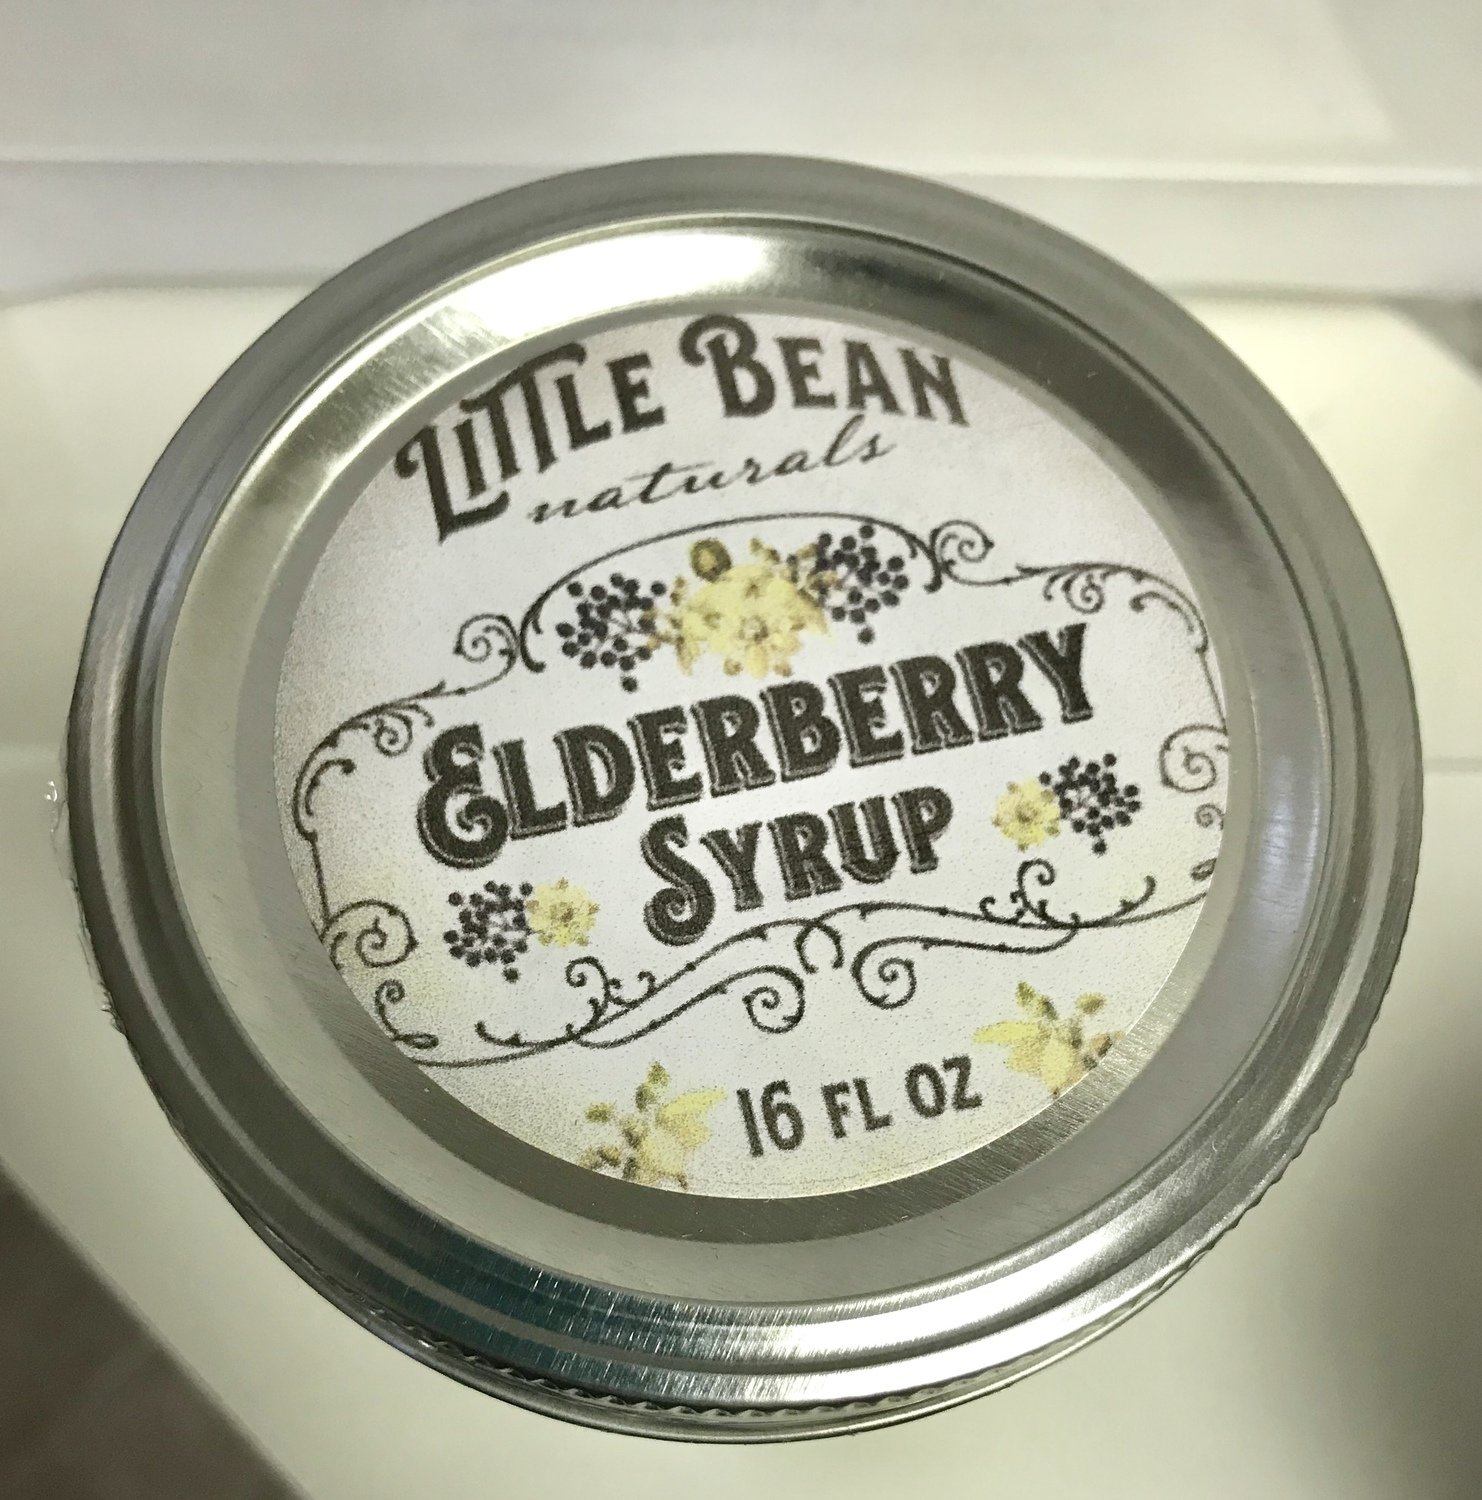 Little Bean Naturals Elderberry Syrup Kit